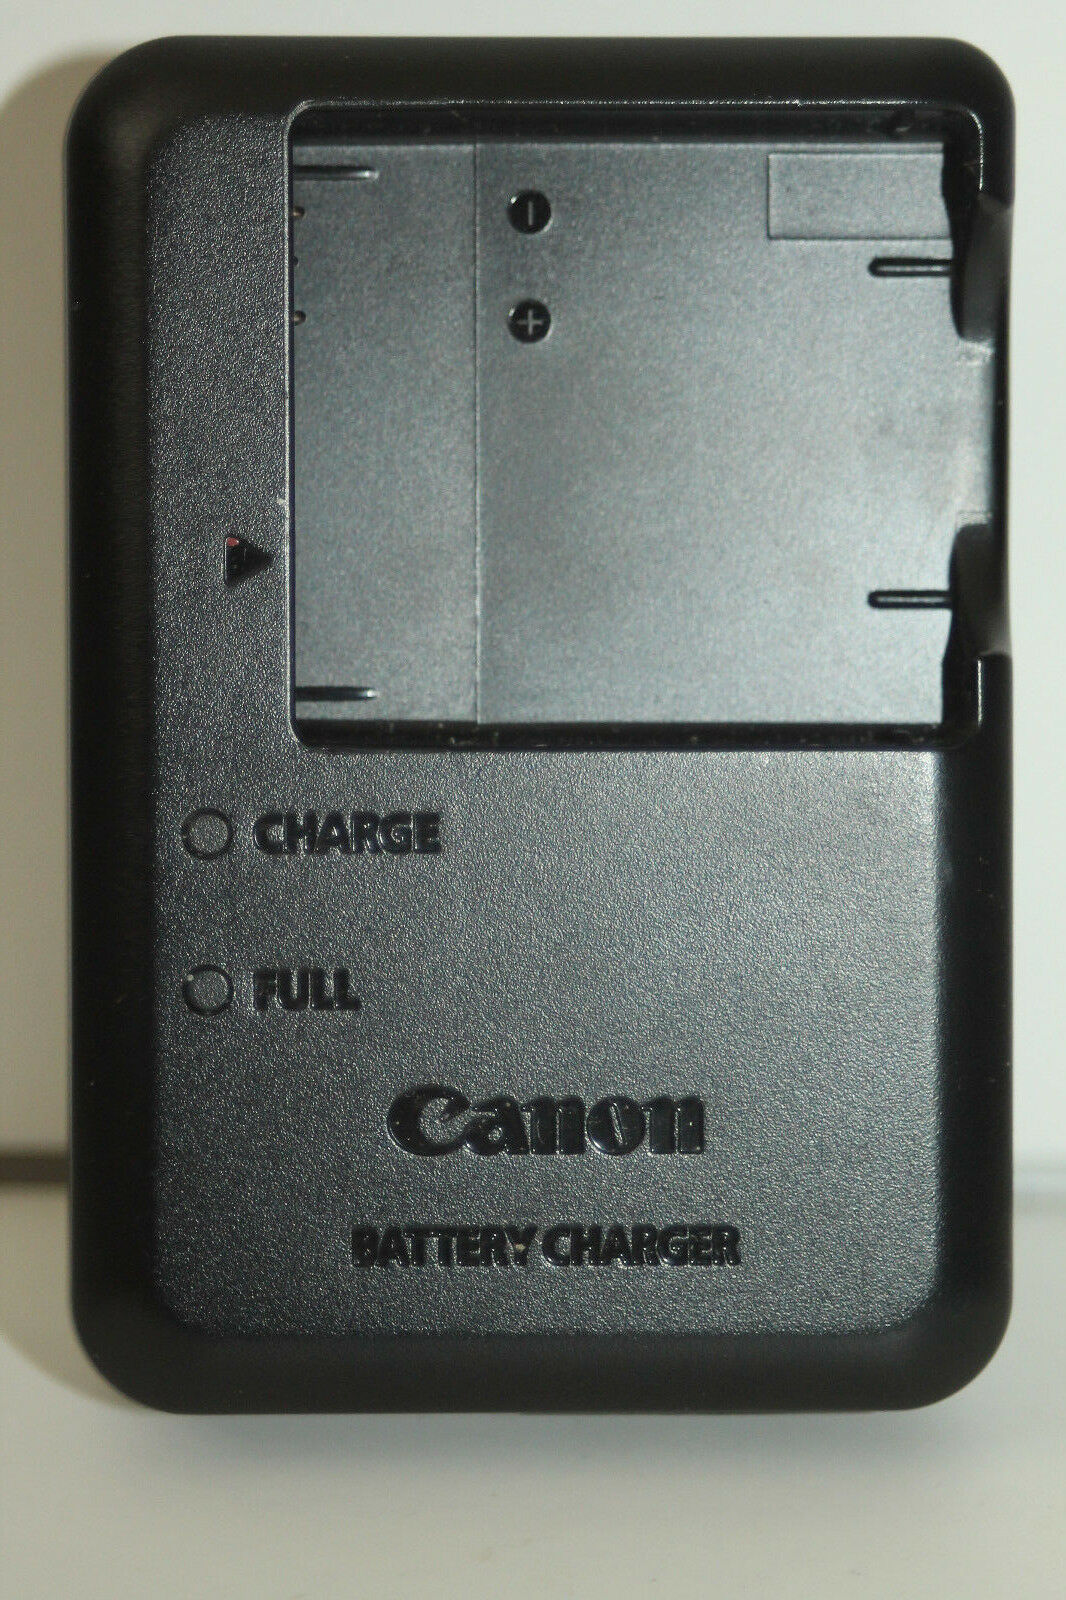 Genuine Canon LB-2LAE Battery Charger - Good Used Condition